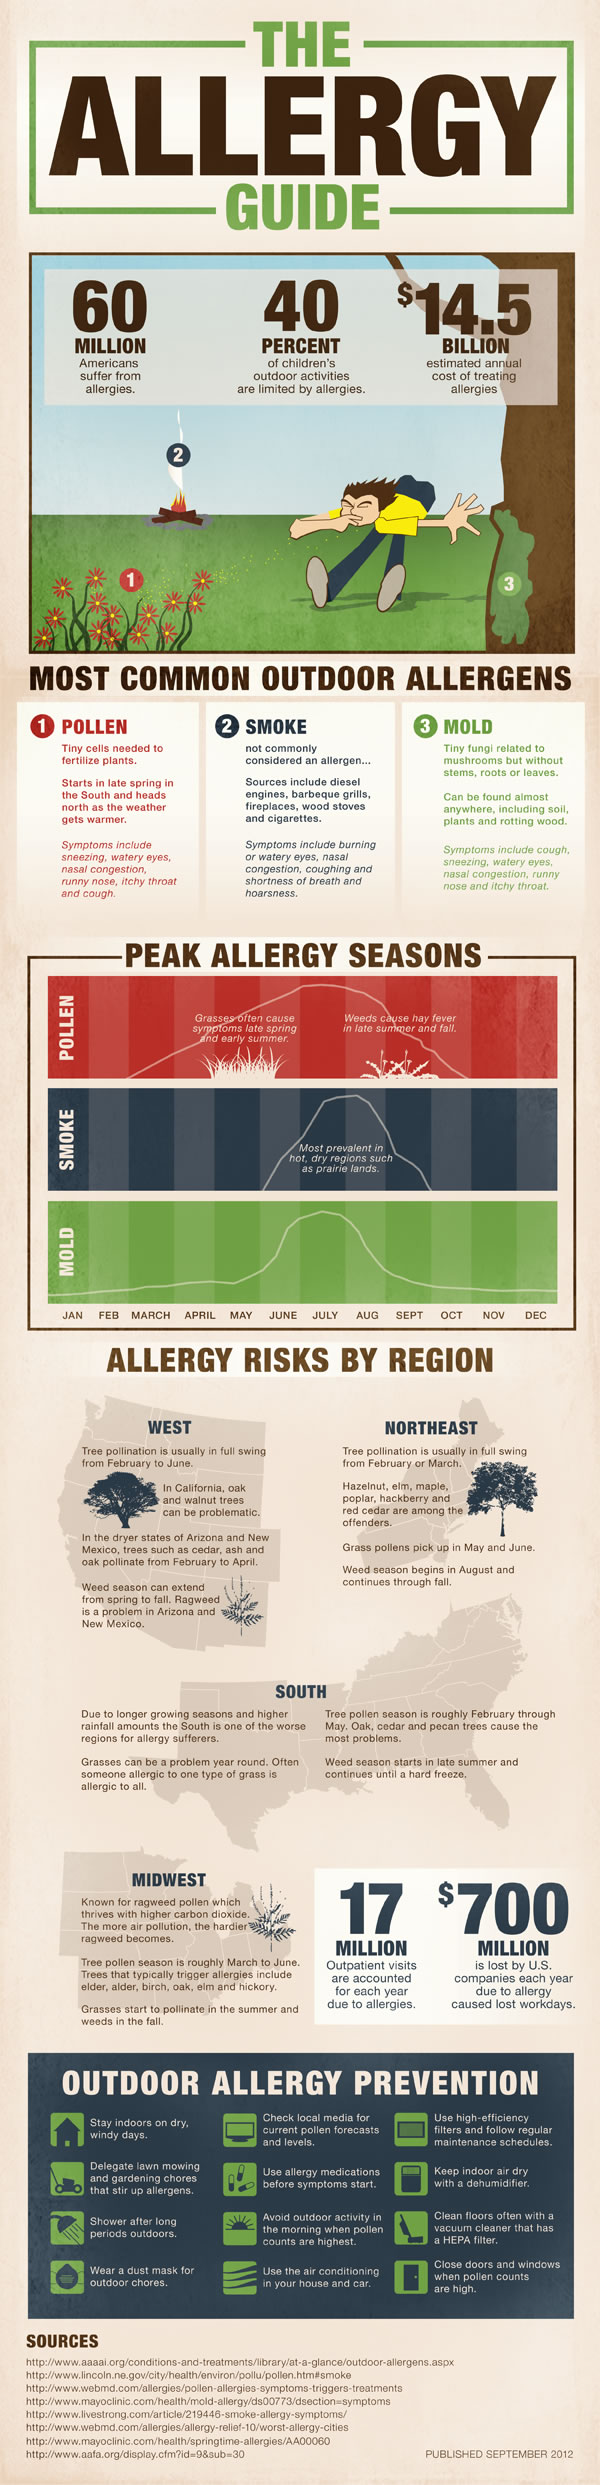 The Allergy Guide